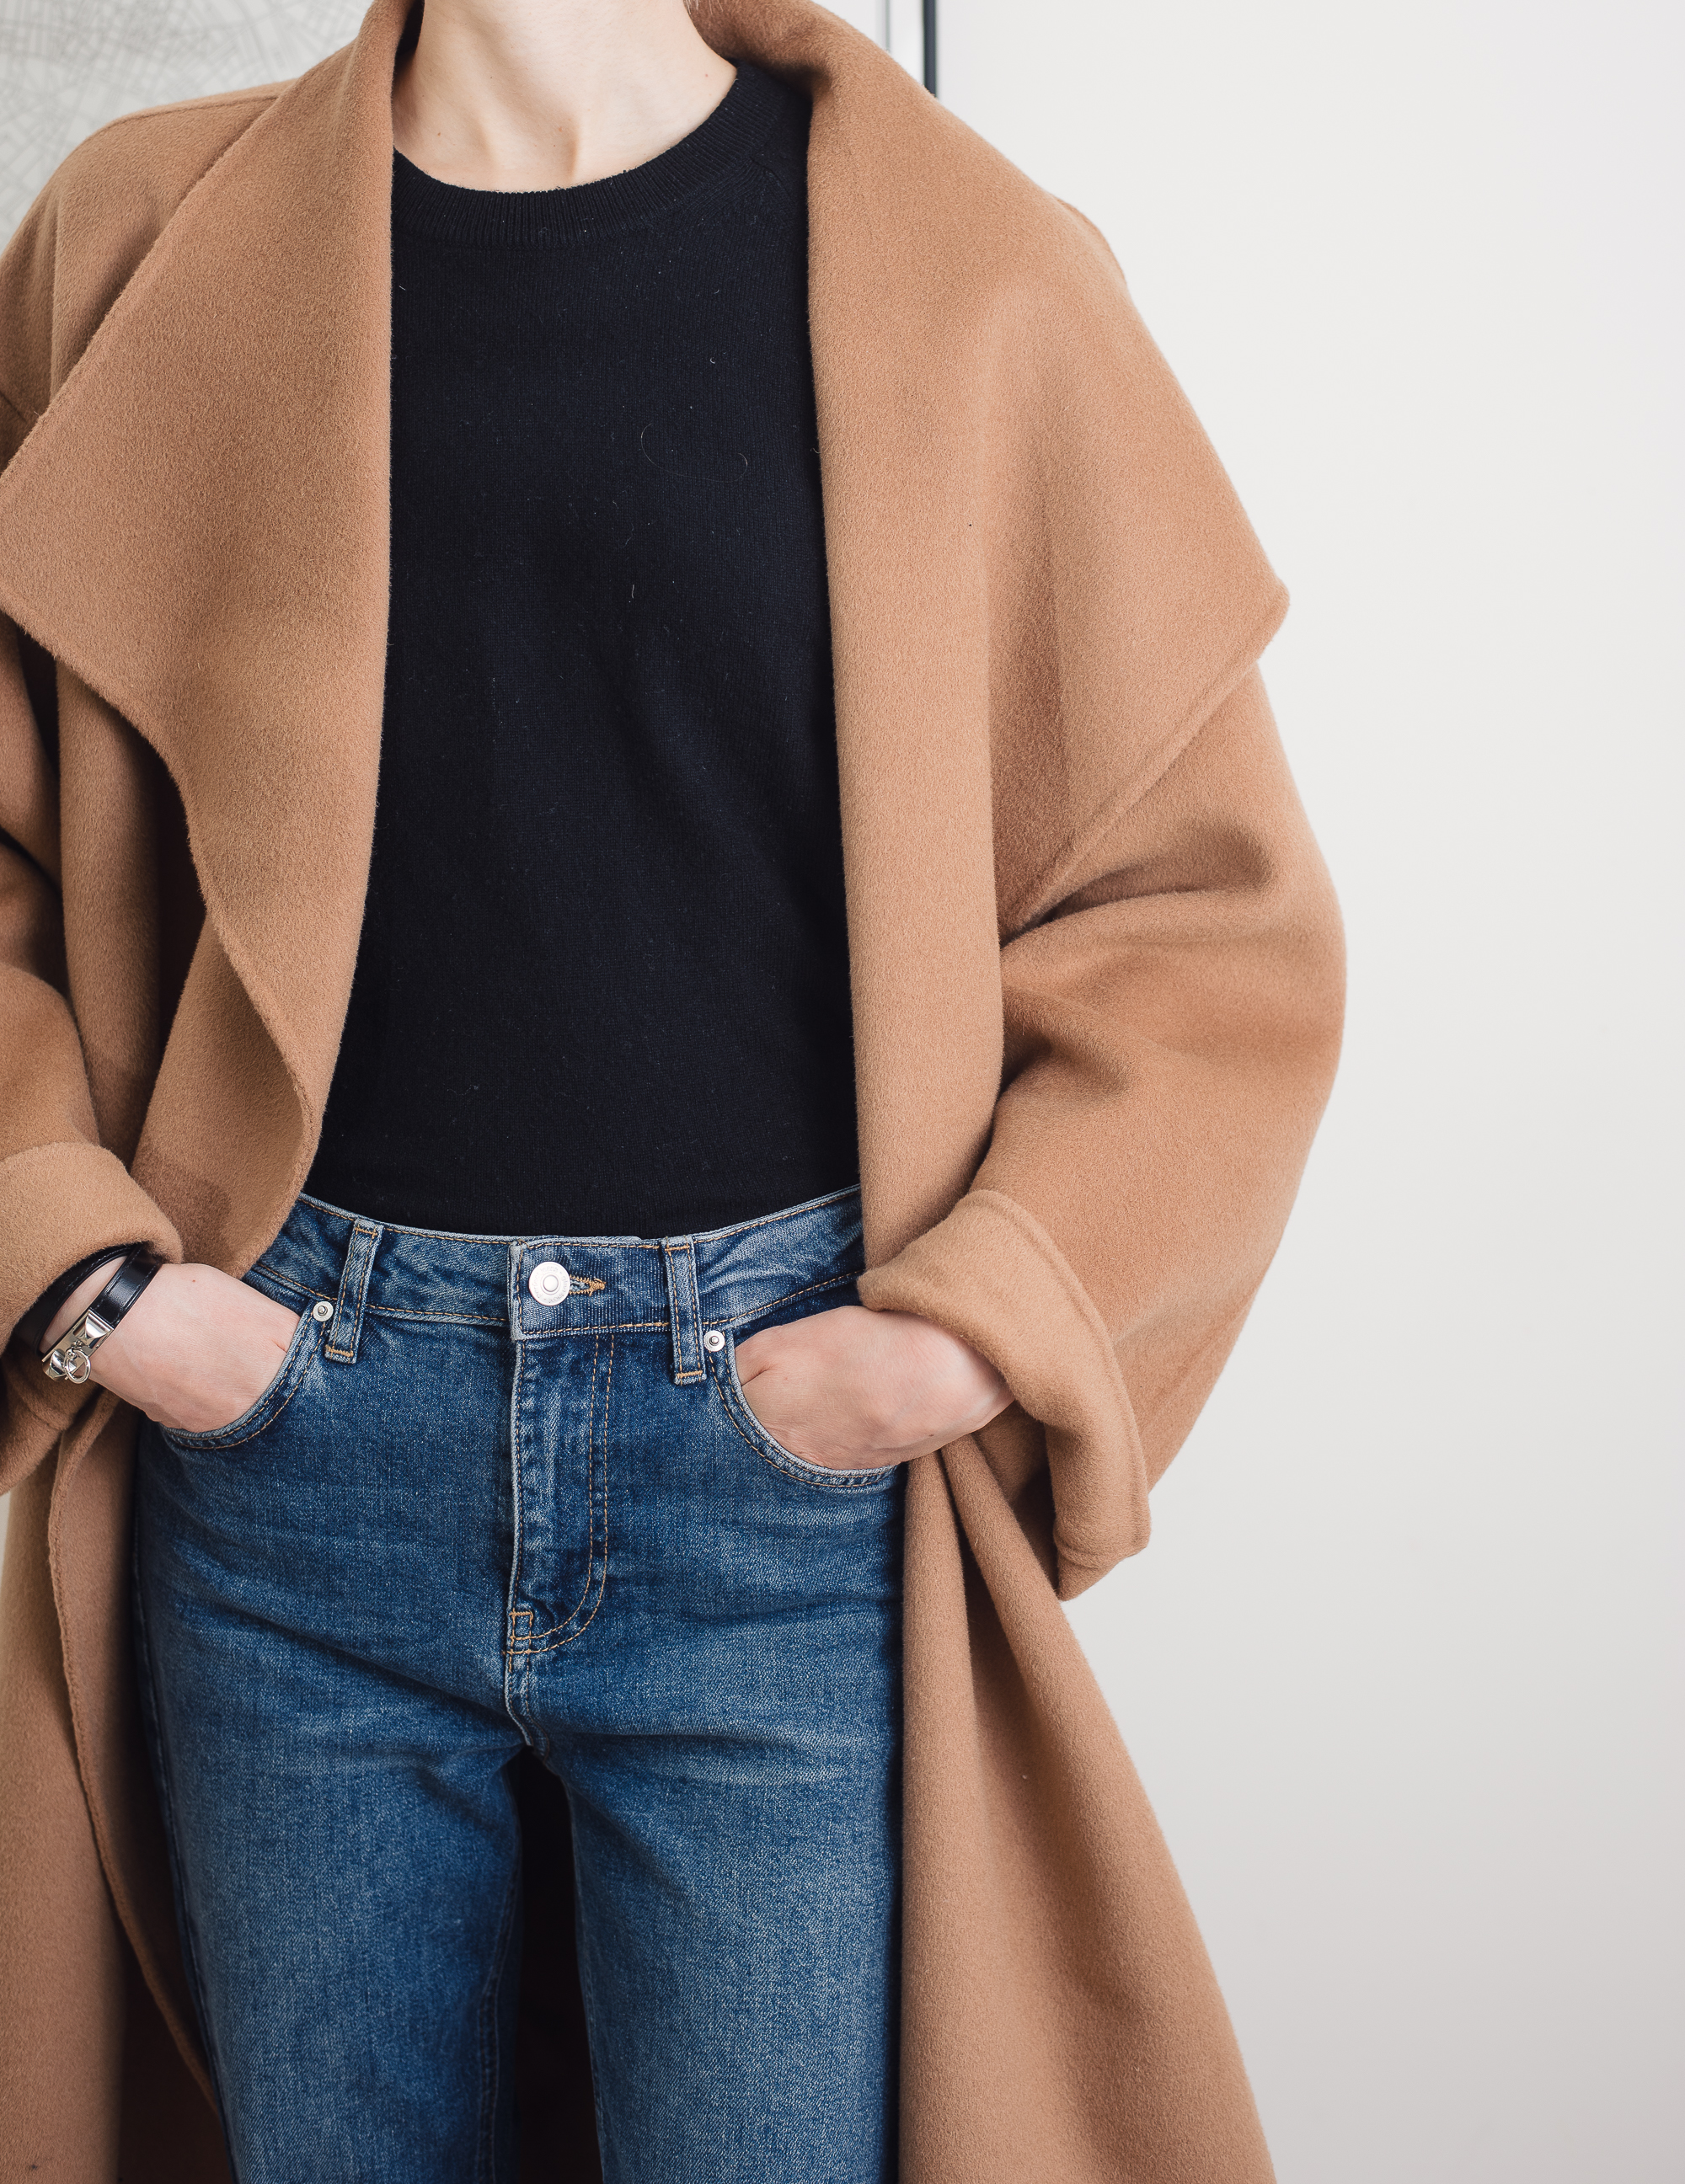 Style Plaza The Curated Camelcoat26